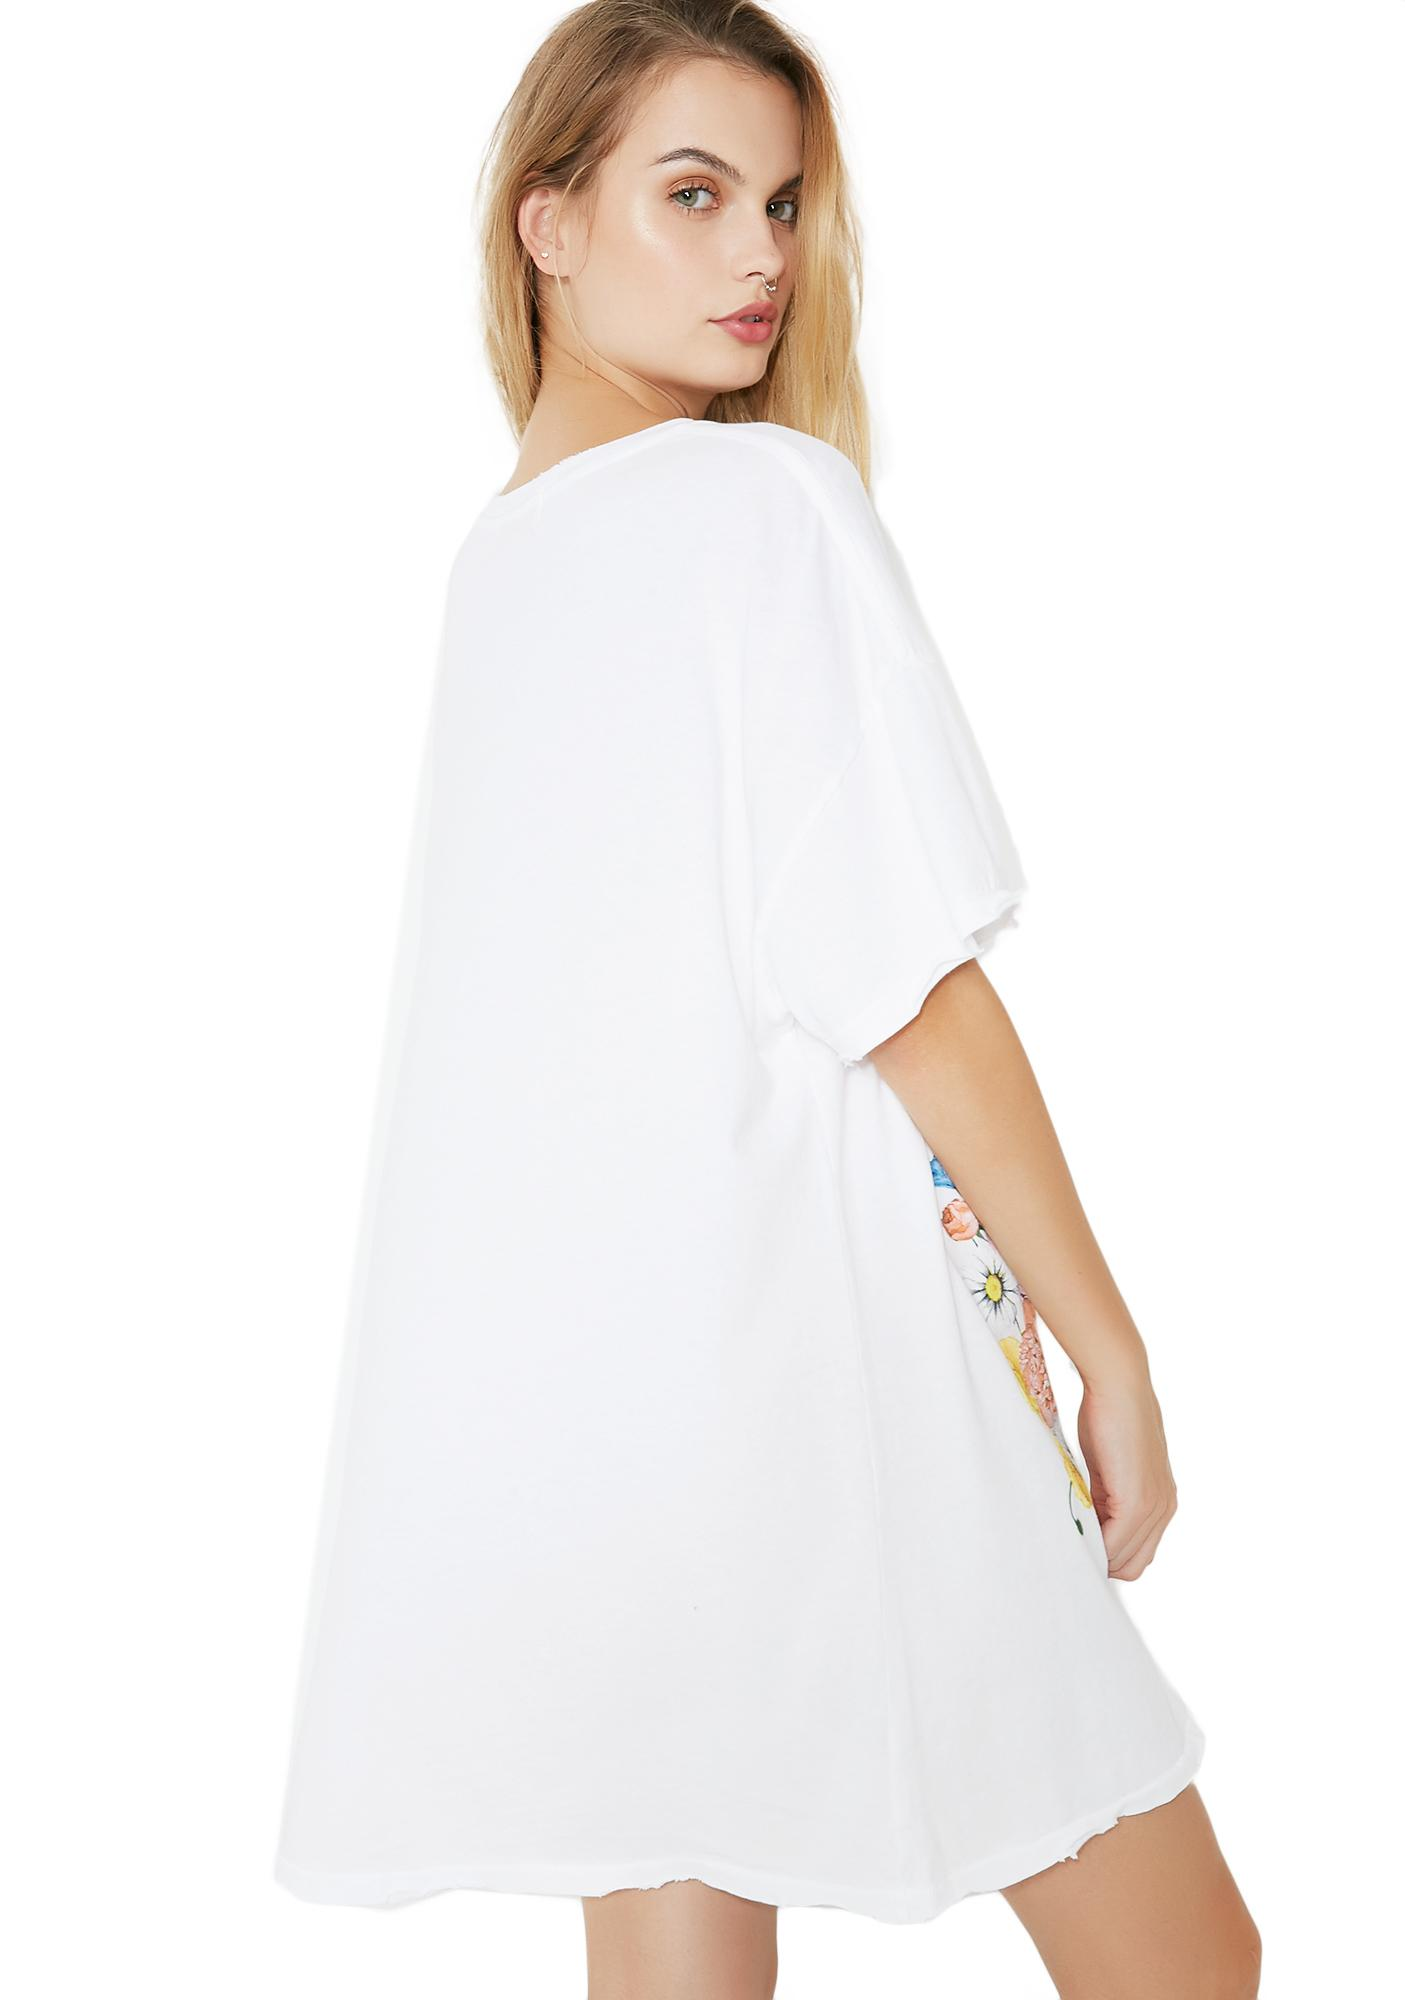 Wildfox Couture Babe Party Doll T-Shirt Dress